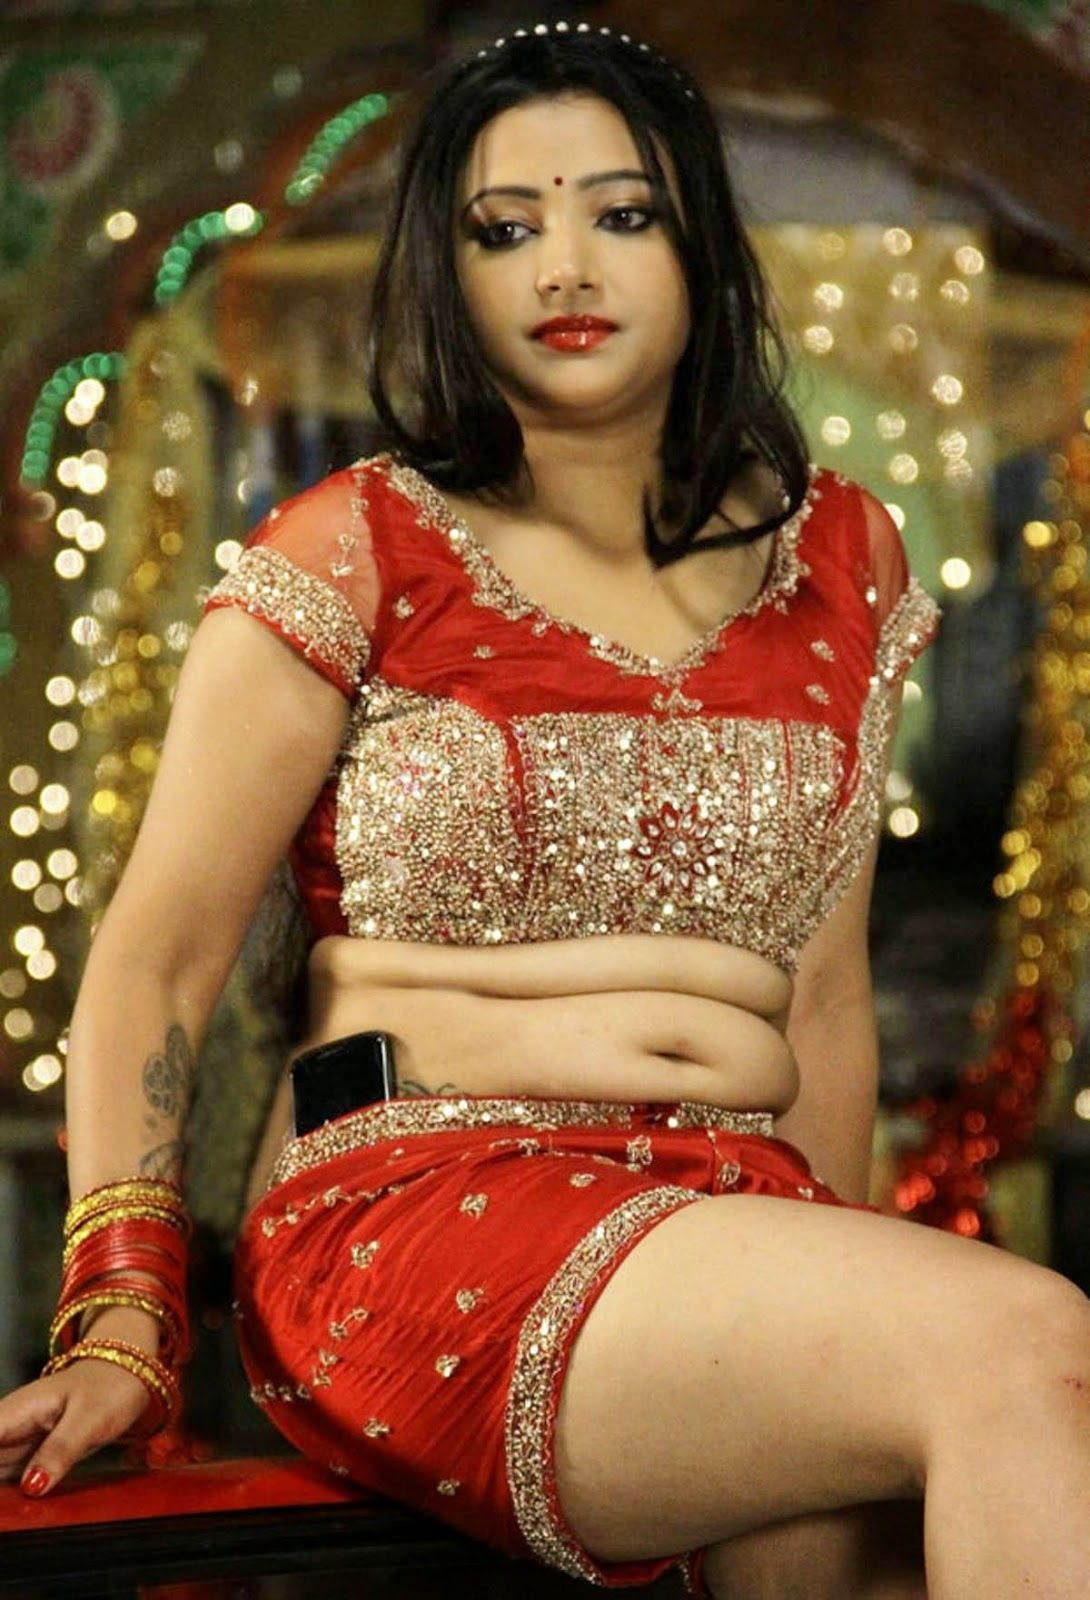 bhabhi desi hot